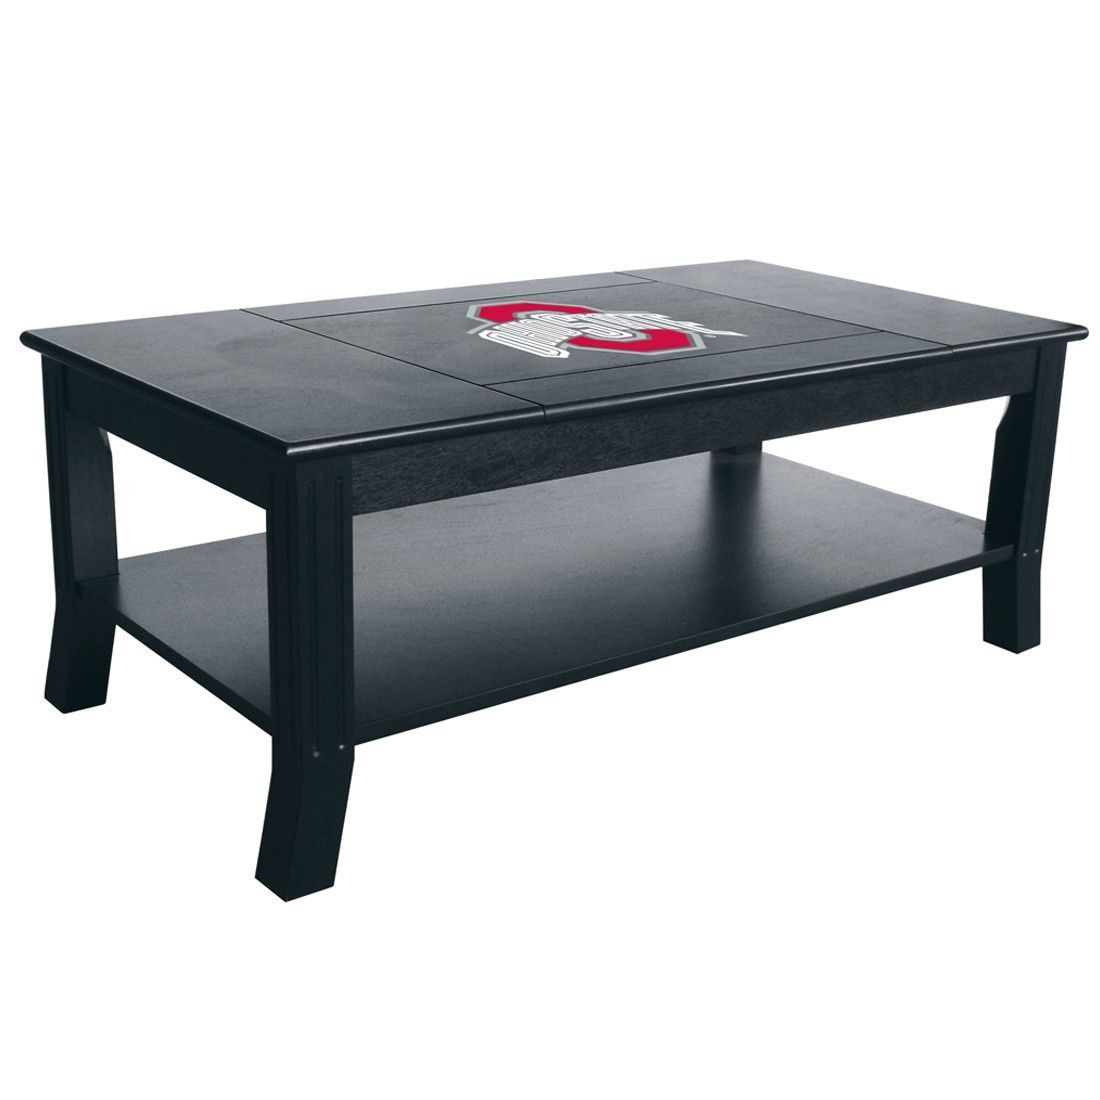 Coffee Table Ohio State University Buckeyes Ohio Buckeyes and